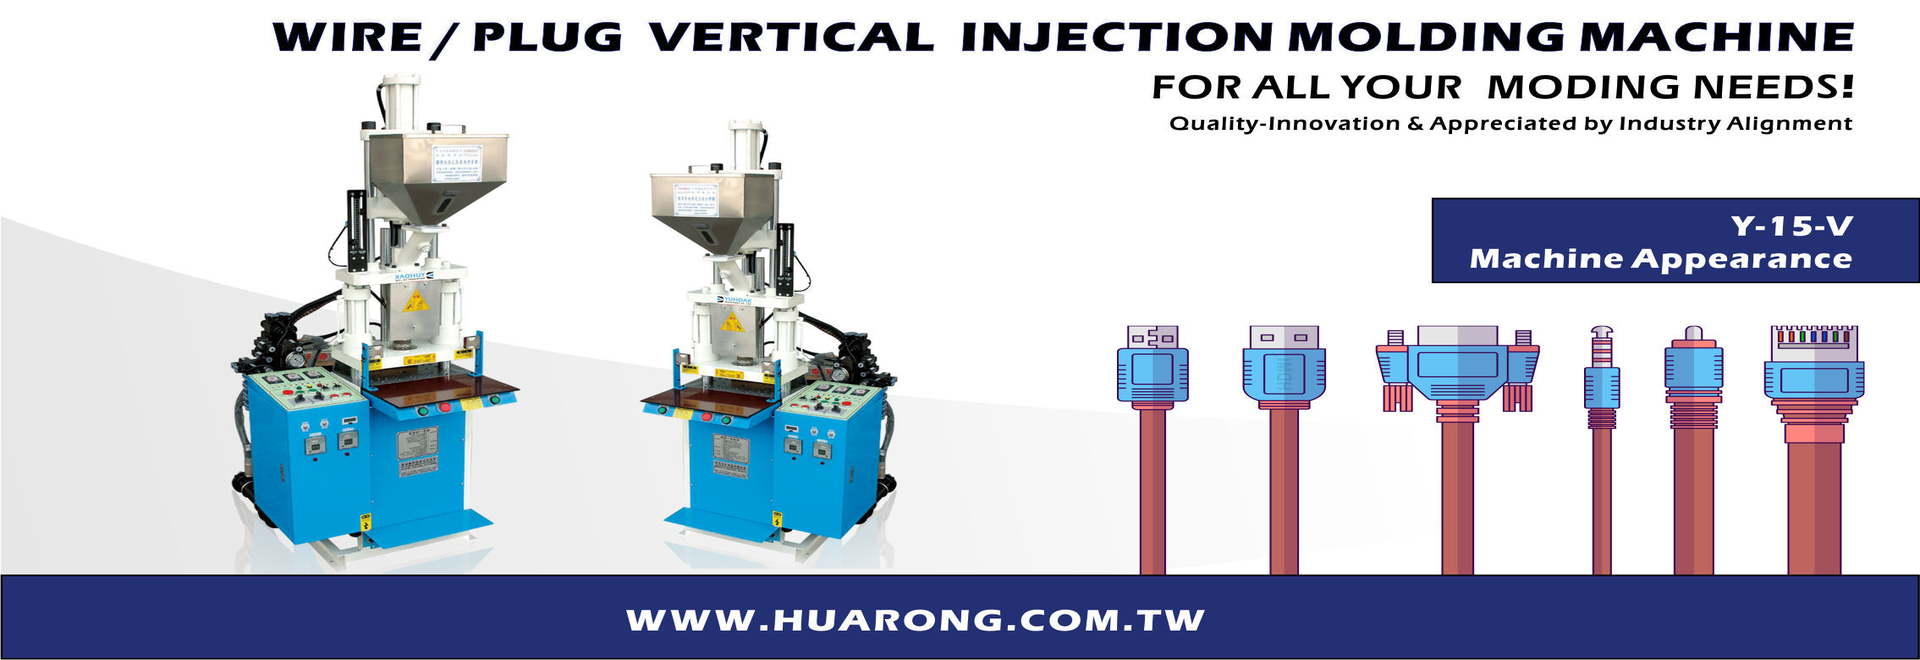 YV series-Wire / Plug Vertical Injection Molding Machine